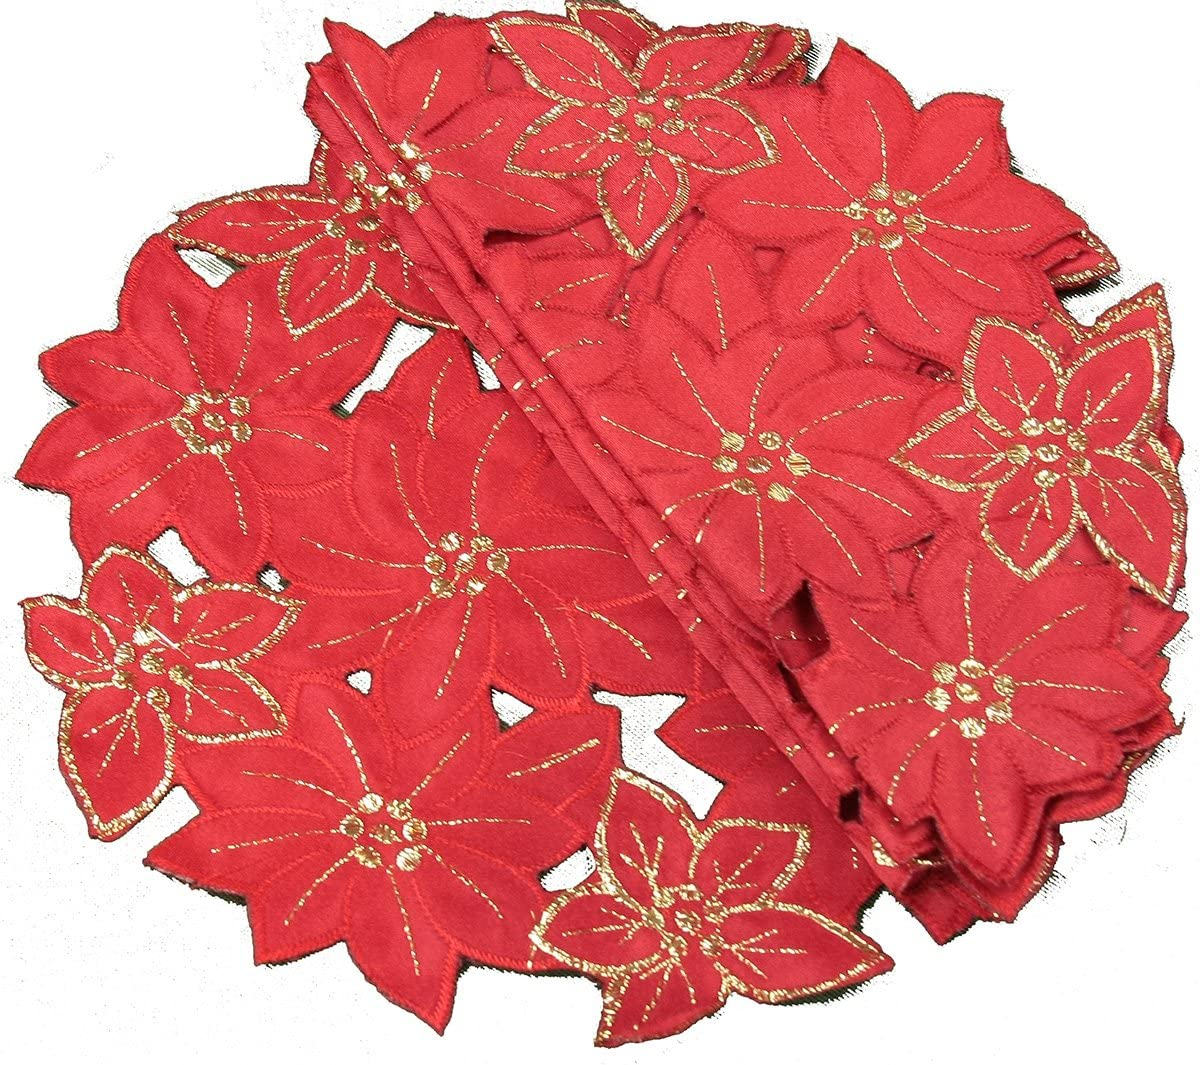 Xia Home Fashions 4-Pack Festive Poinsettia Embroidered Cutwork Round Holiday Doily, 8-Inch